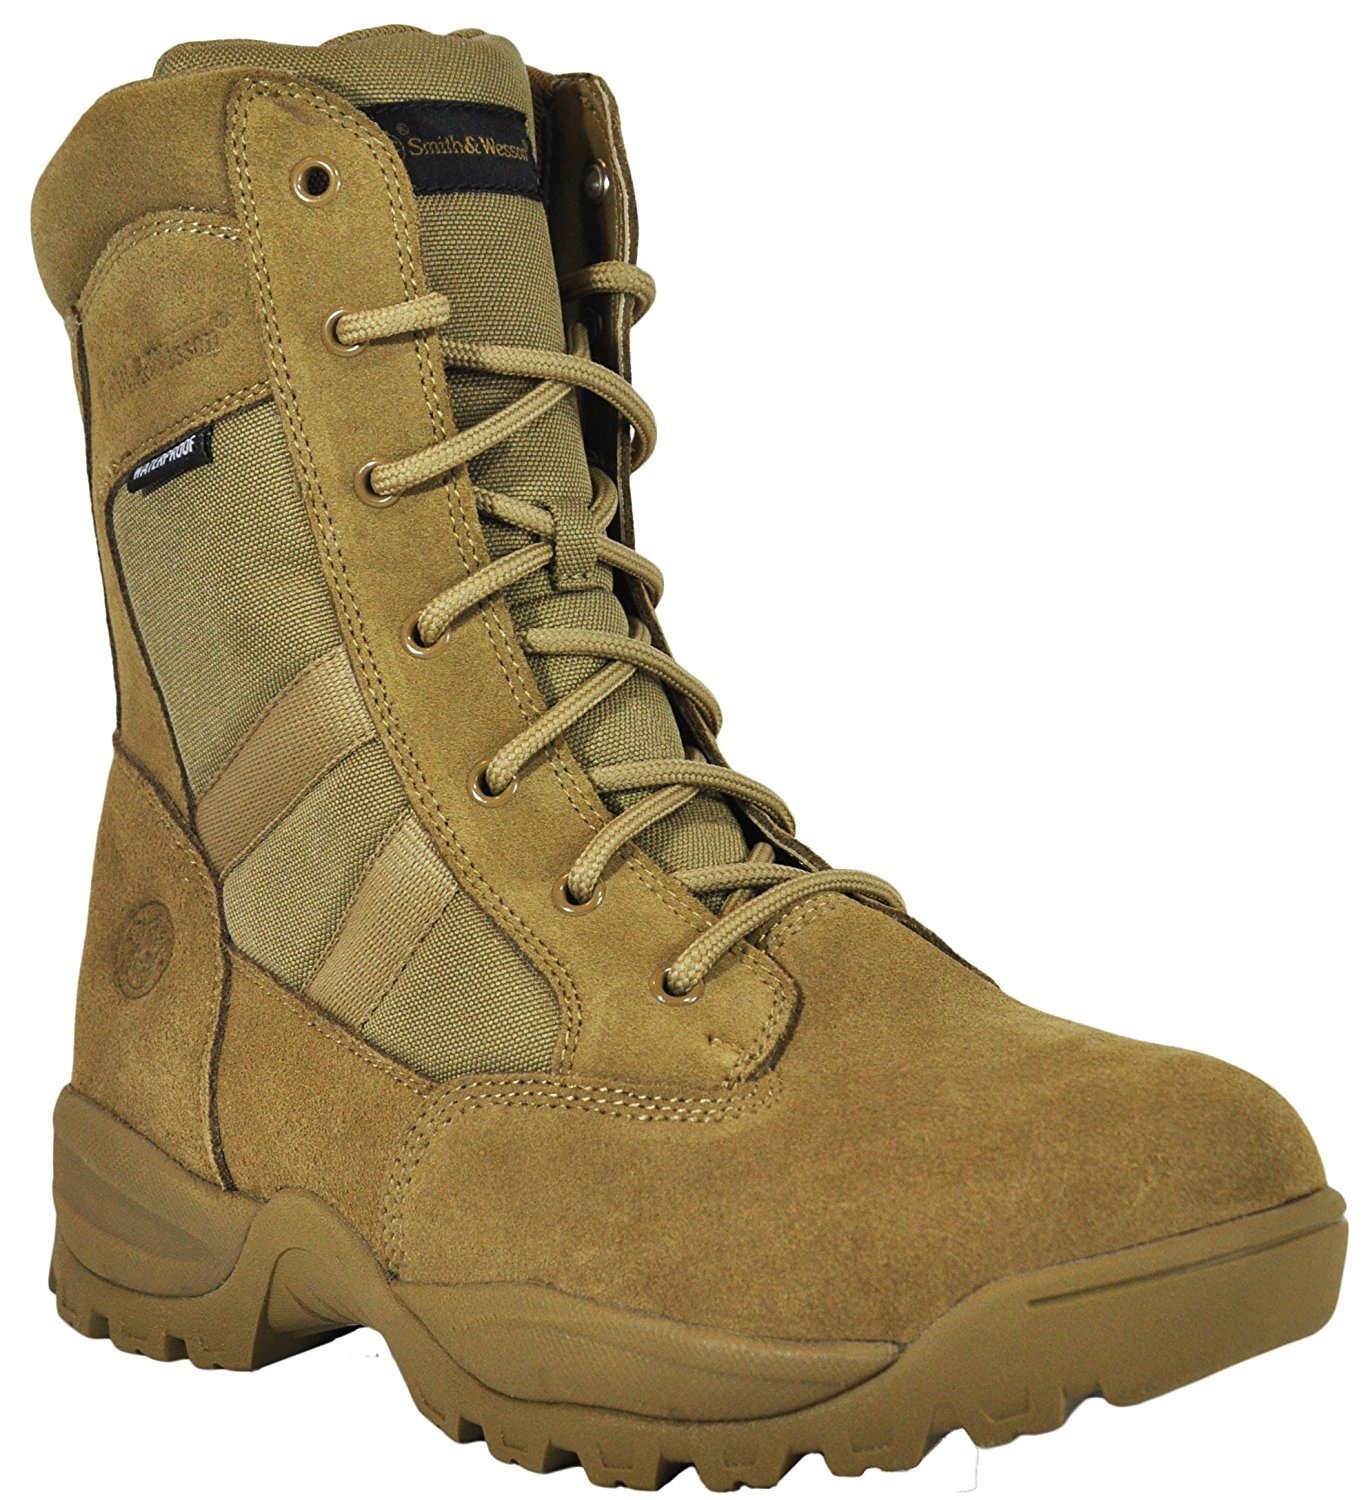 Smith & Wesson Men's Breach 2.0 Tactical Waterproof Side Zip Boots, Coyote, 10.5 by Smith & Wesson